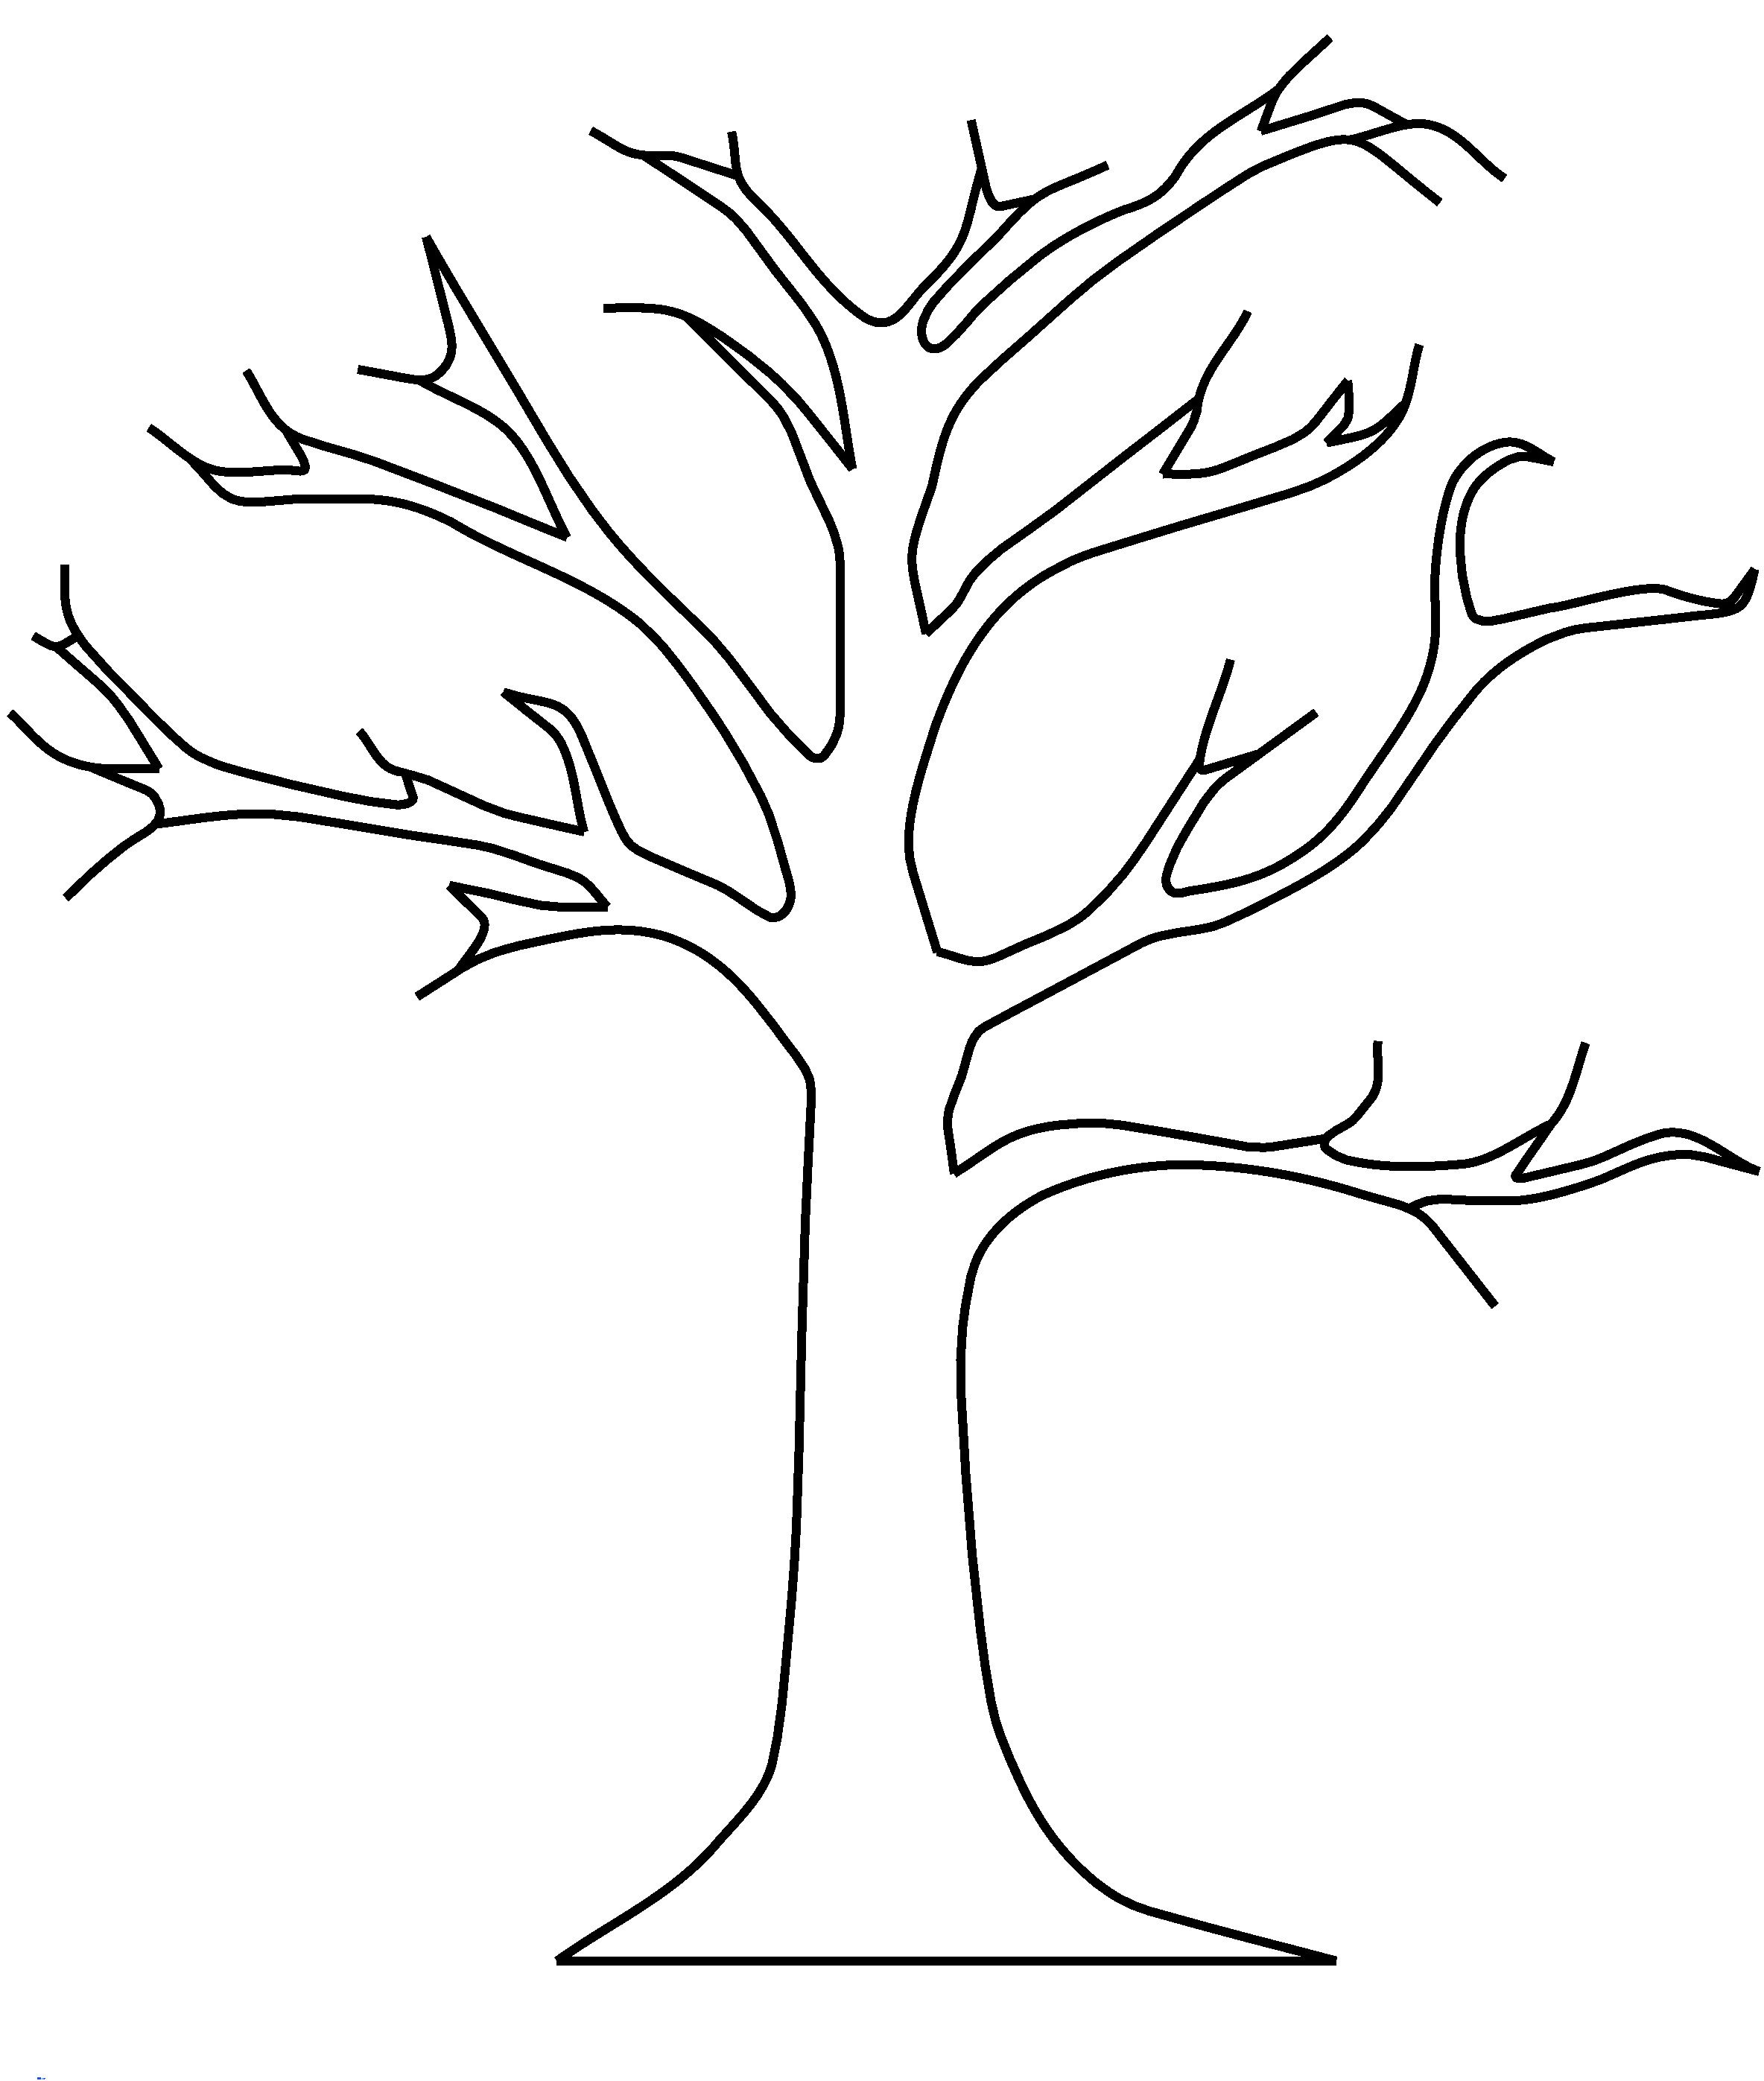 free printable fall tree coloring pages - apple tree apple tree without leaves